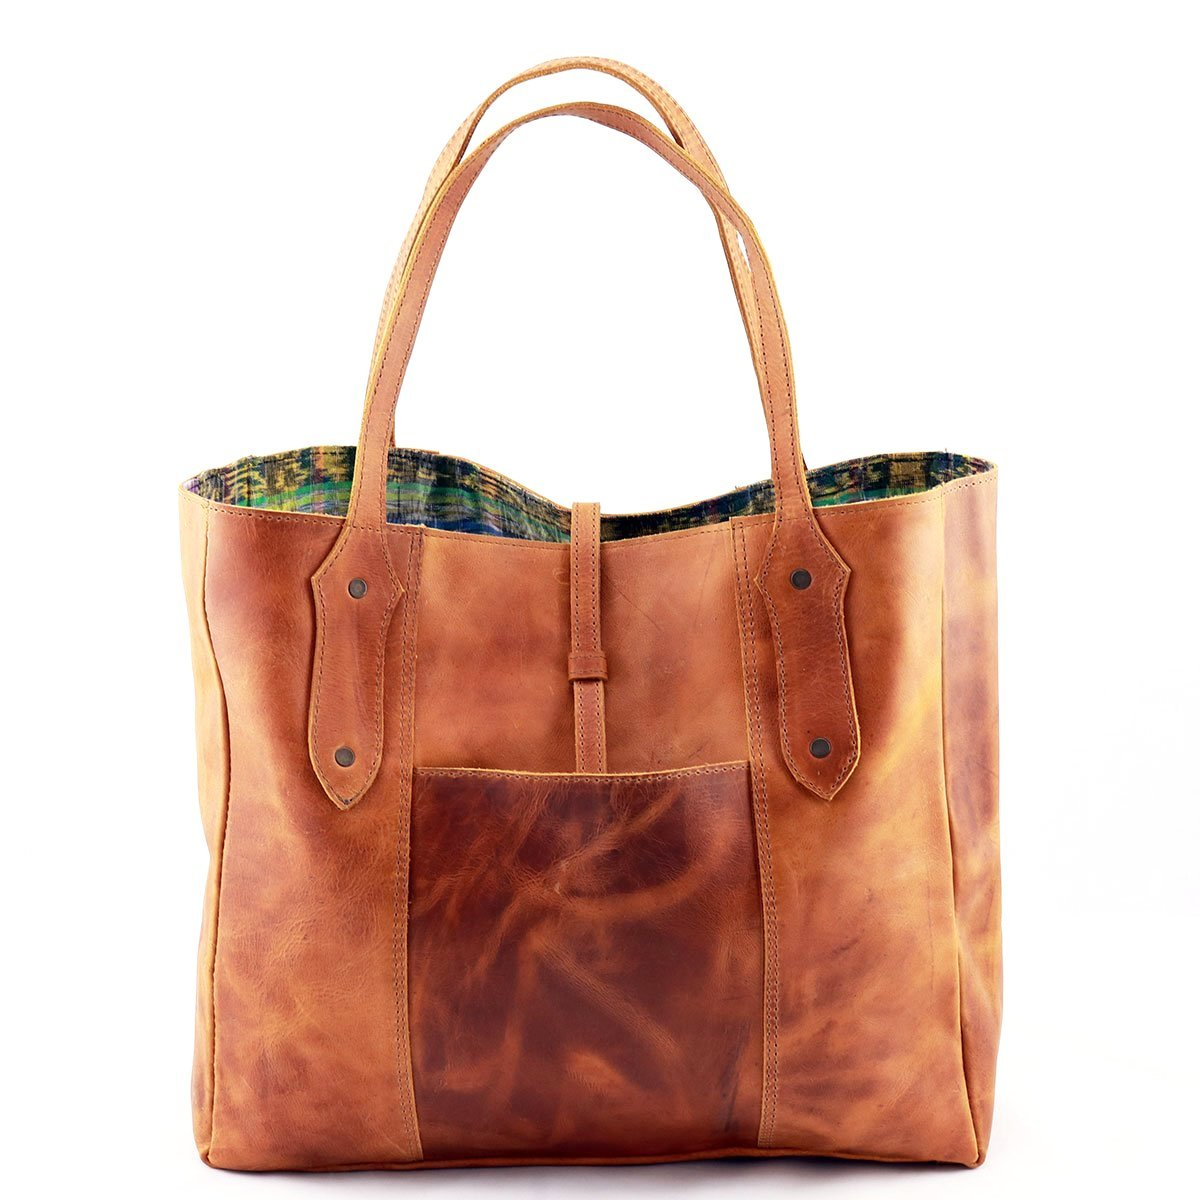 Antigua Medium Leather Tote